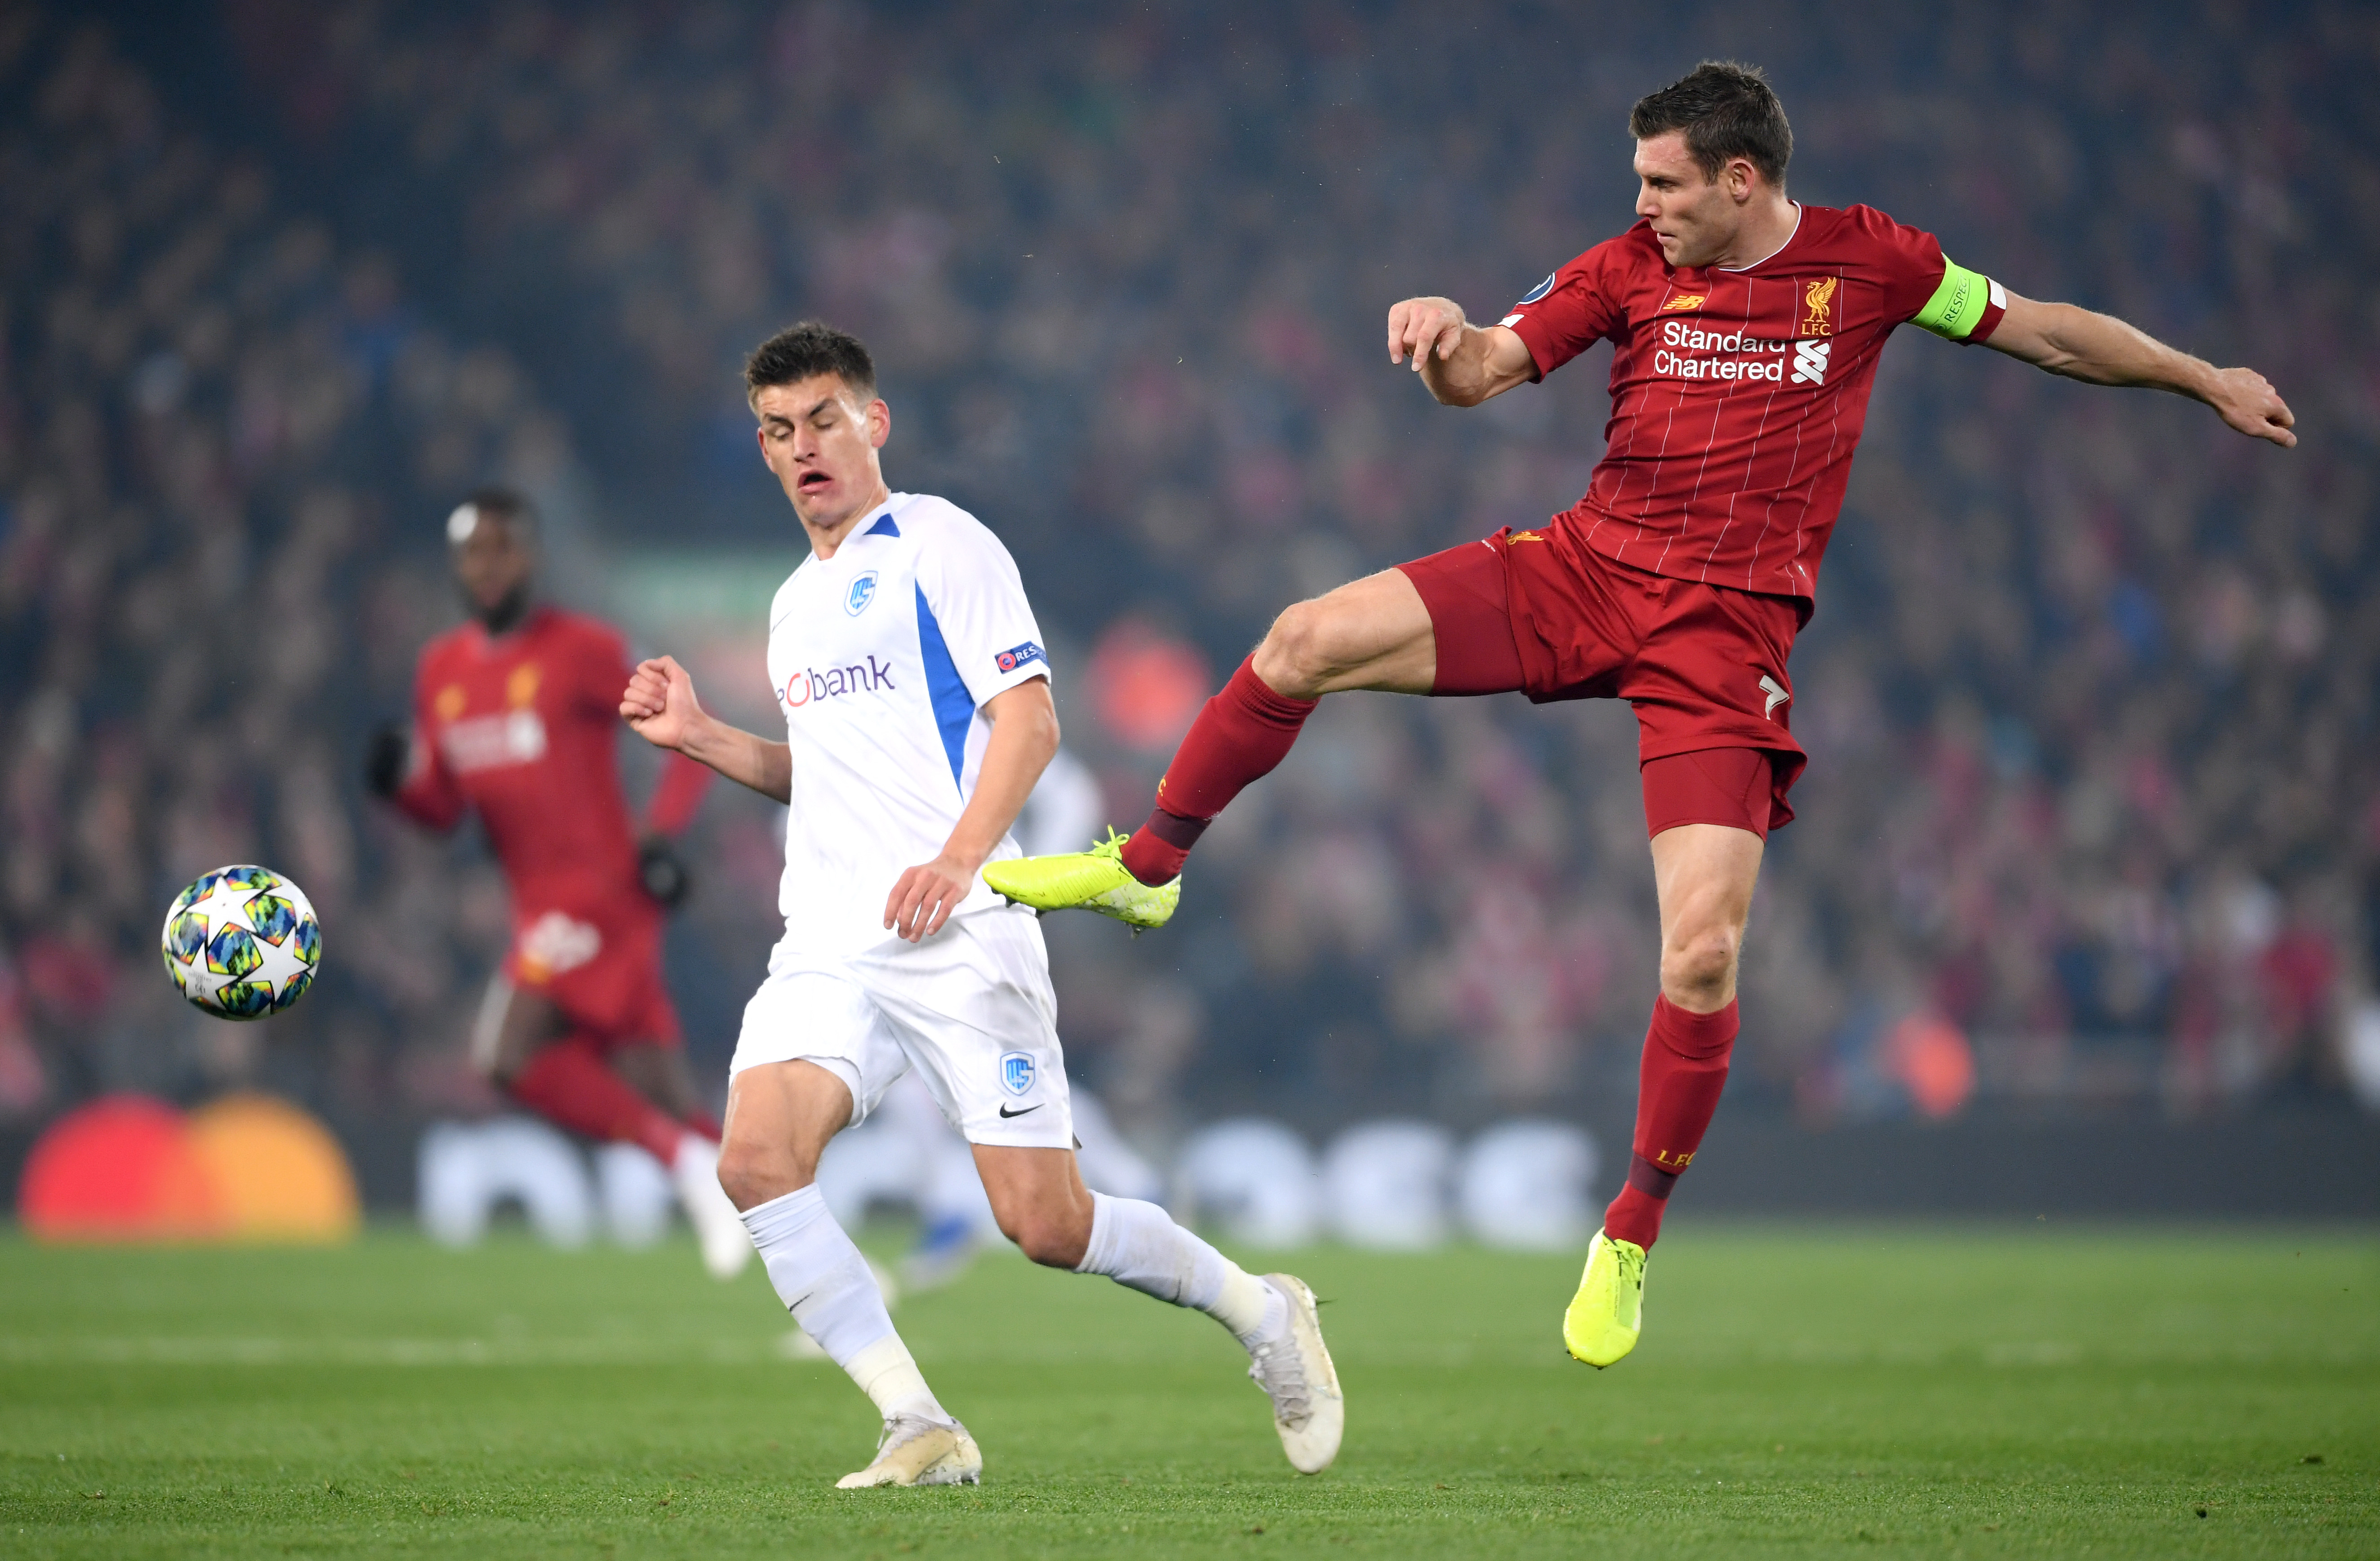 Joakim Maehle of KRC Genk battles for possession with James Milner of Liverpool.